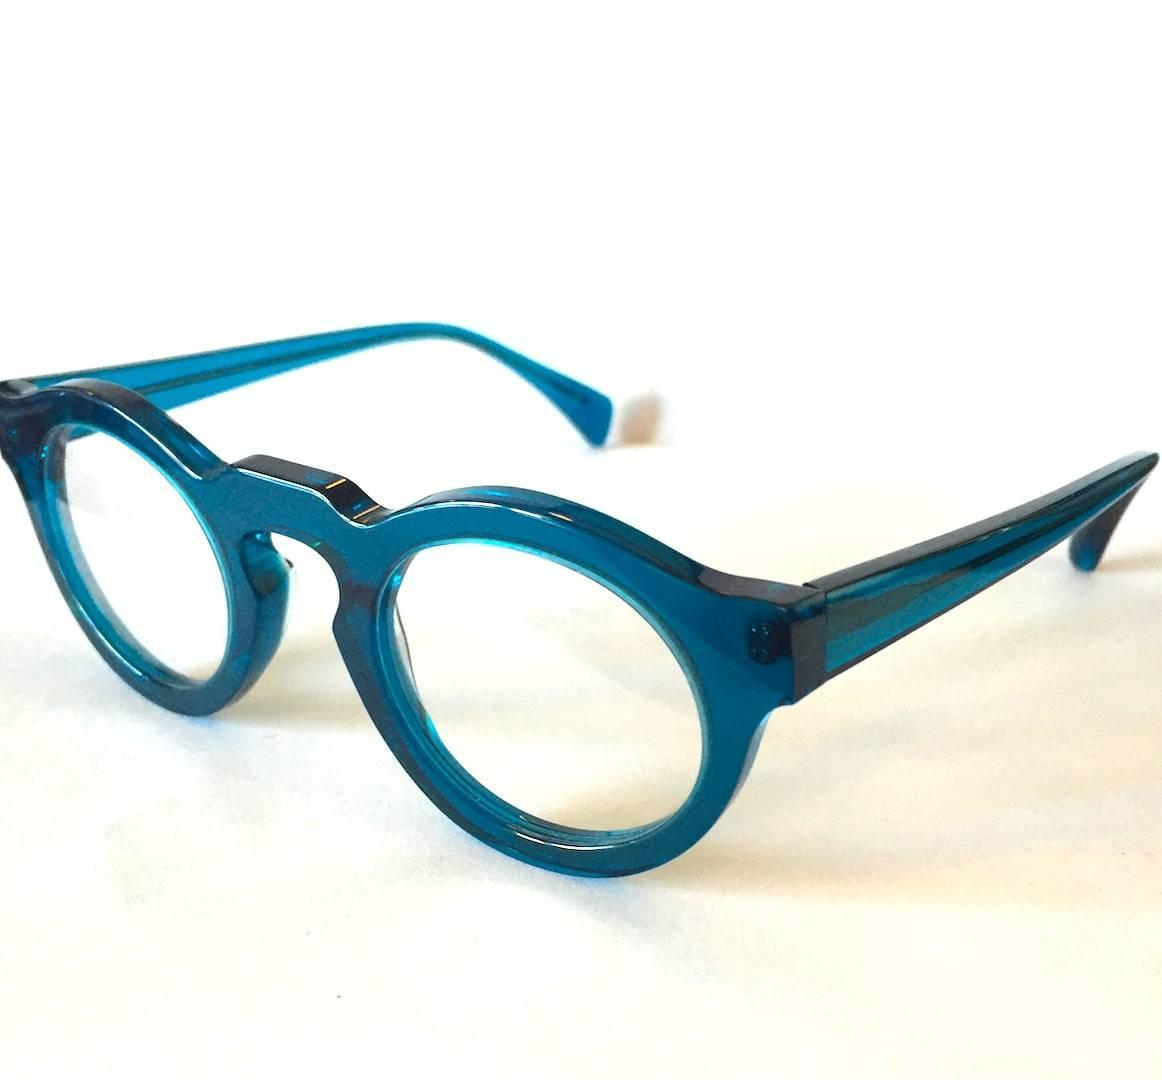 Glasses Frames Bridge Size : Neo-Vintage Eyewear by Jacques Durand - Classic Keyhole ...